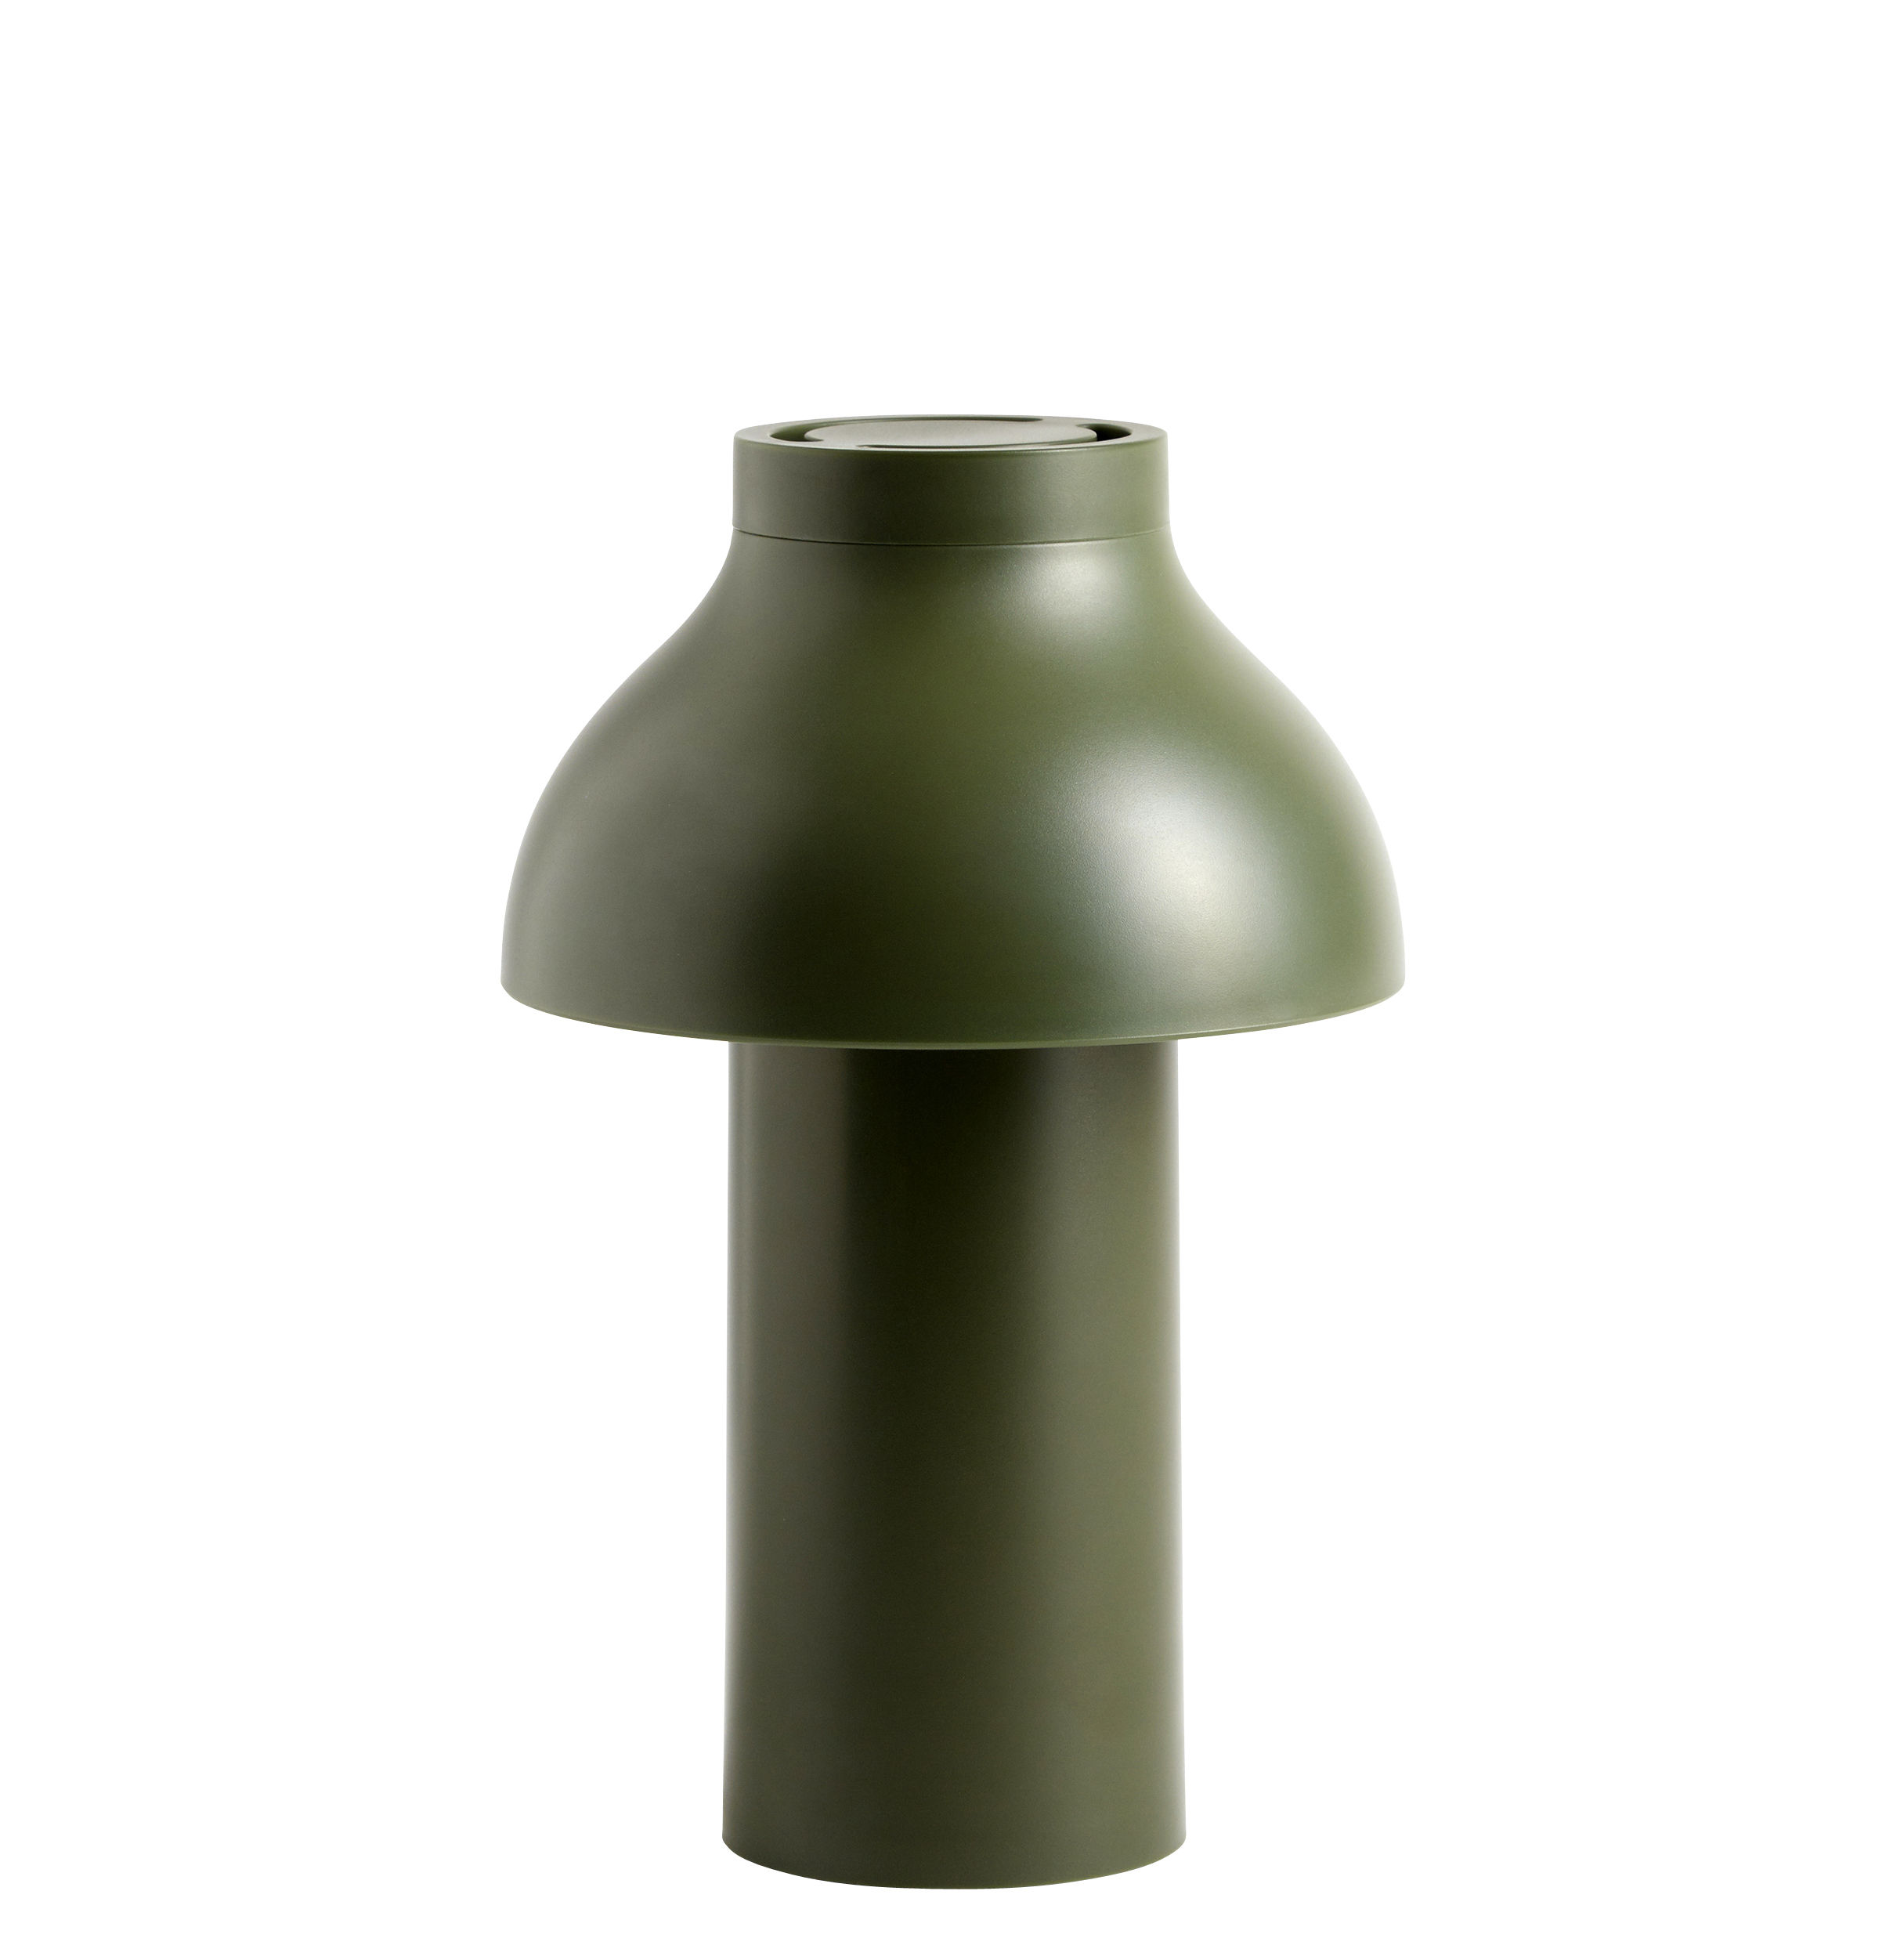 Lighting - Table Lamps - PC Portable LED Wireless lamp - / For outdoor use - USB charging by Hay - Olive - Polythene